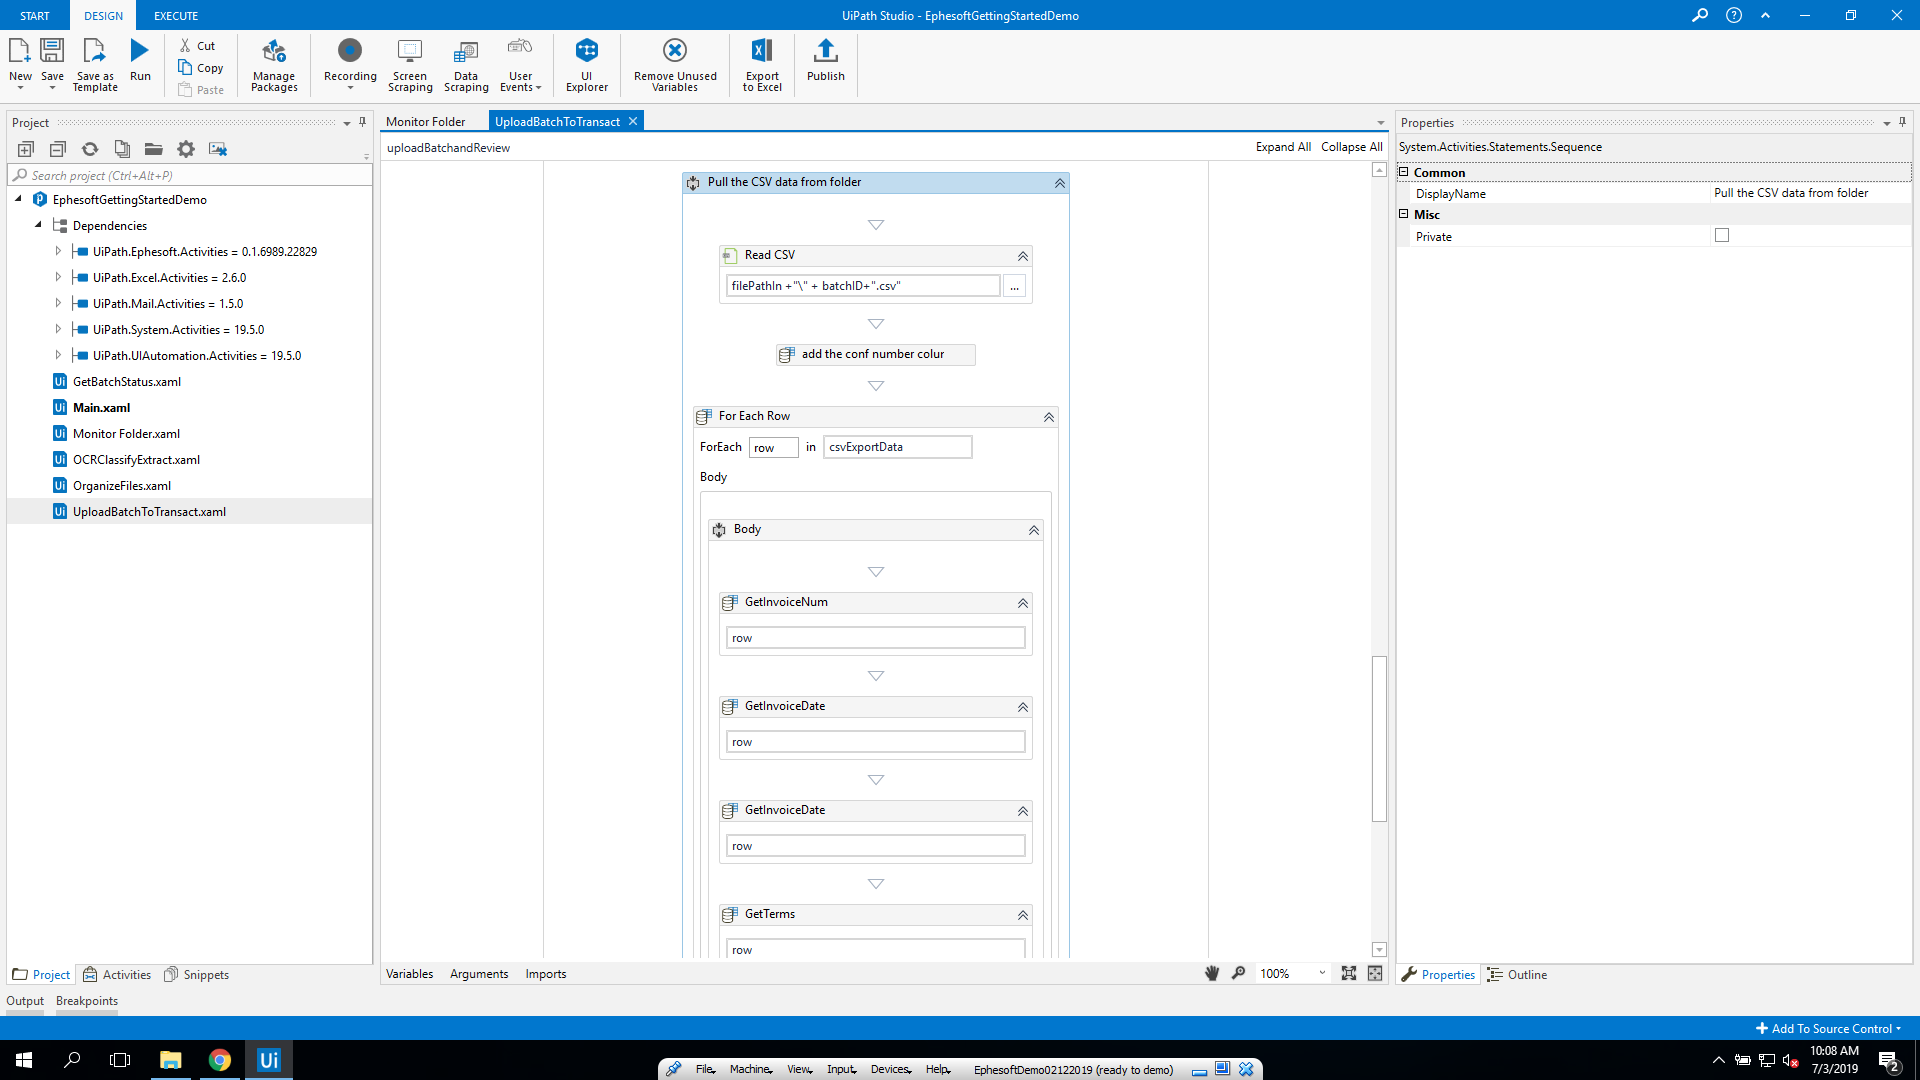 Getting Started with Ephesoft Transact and UiPath | Ephesoft